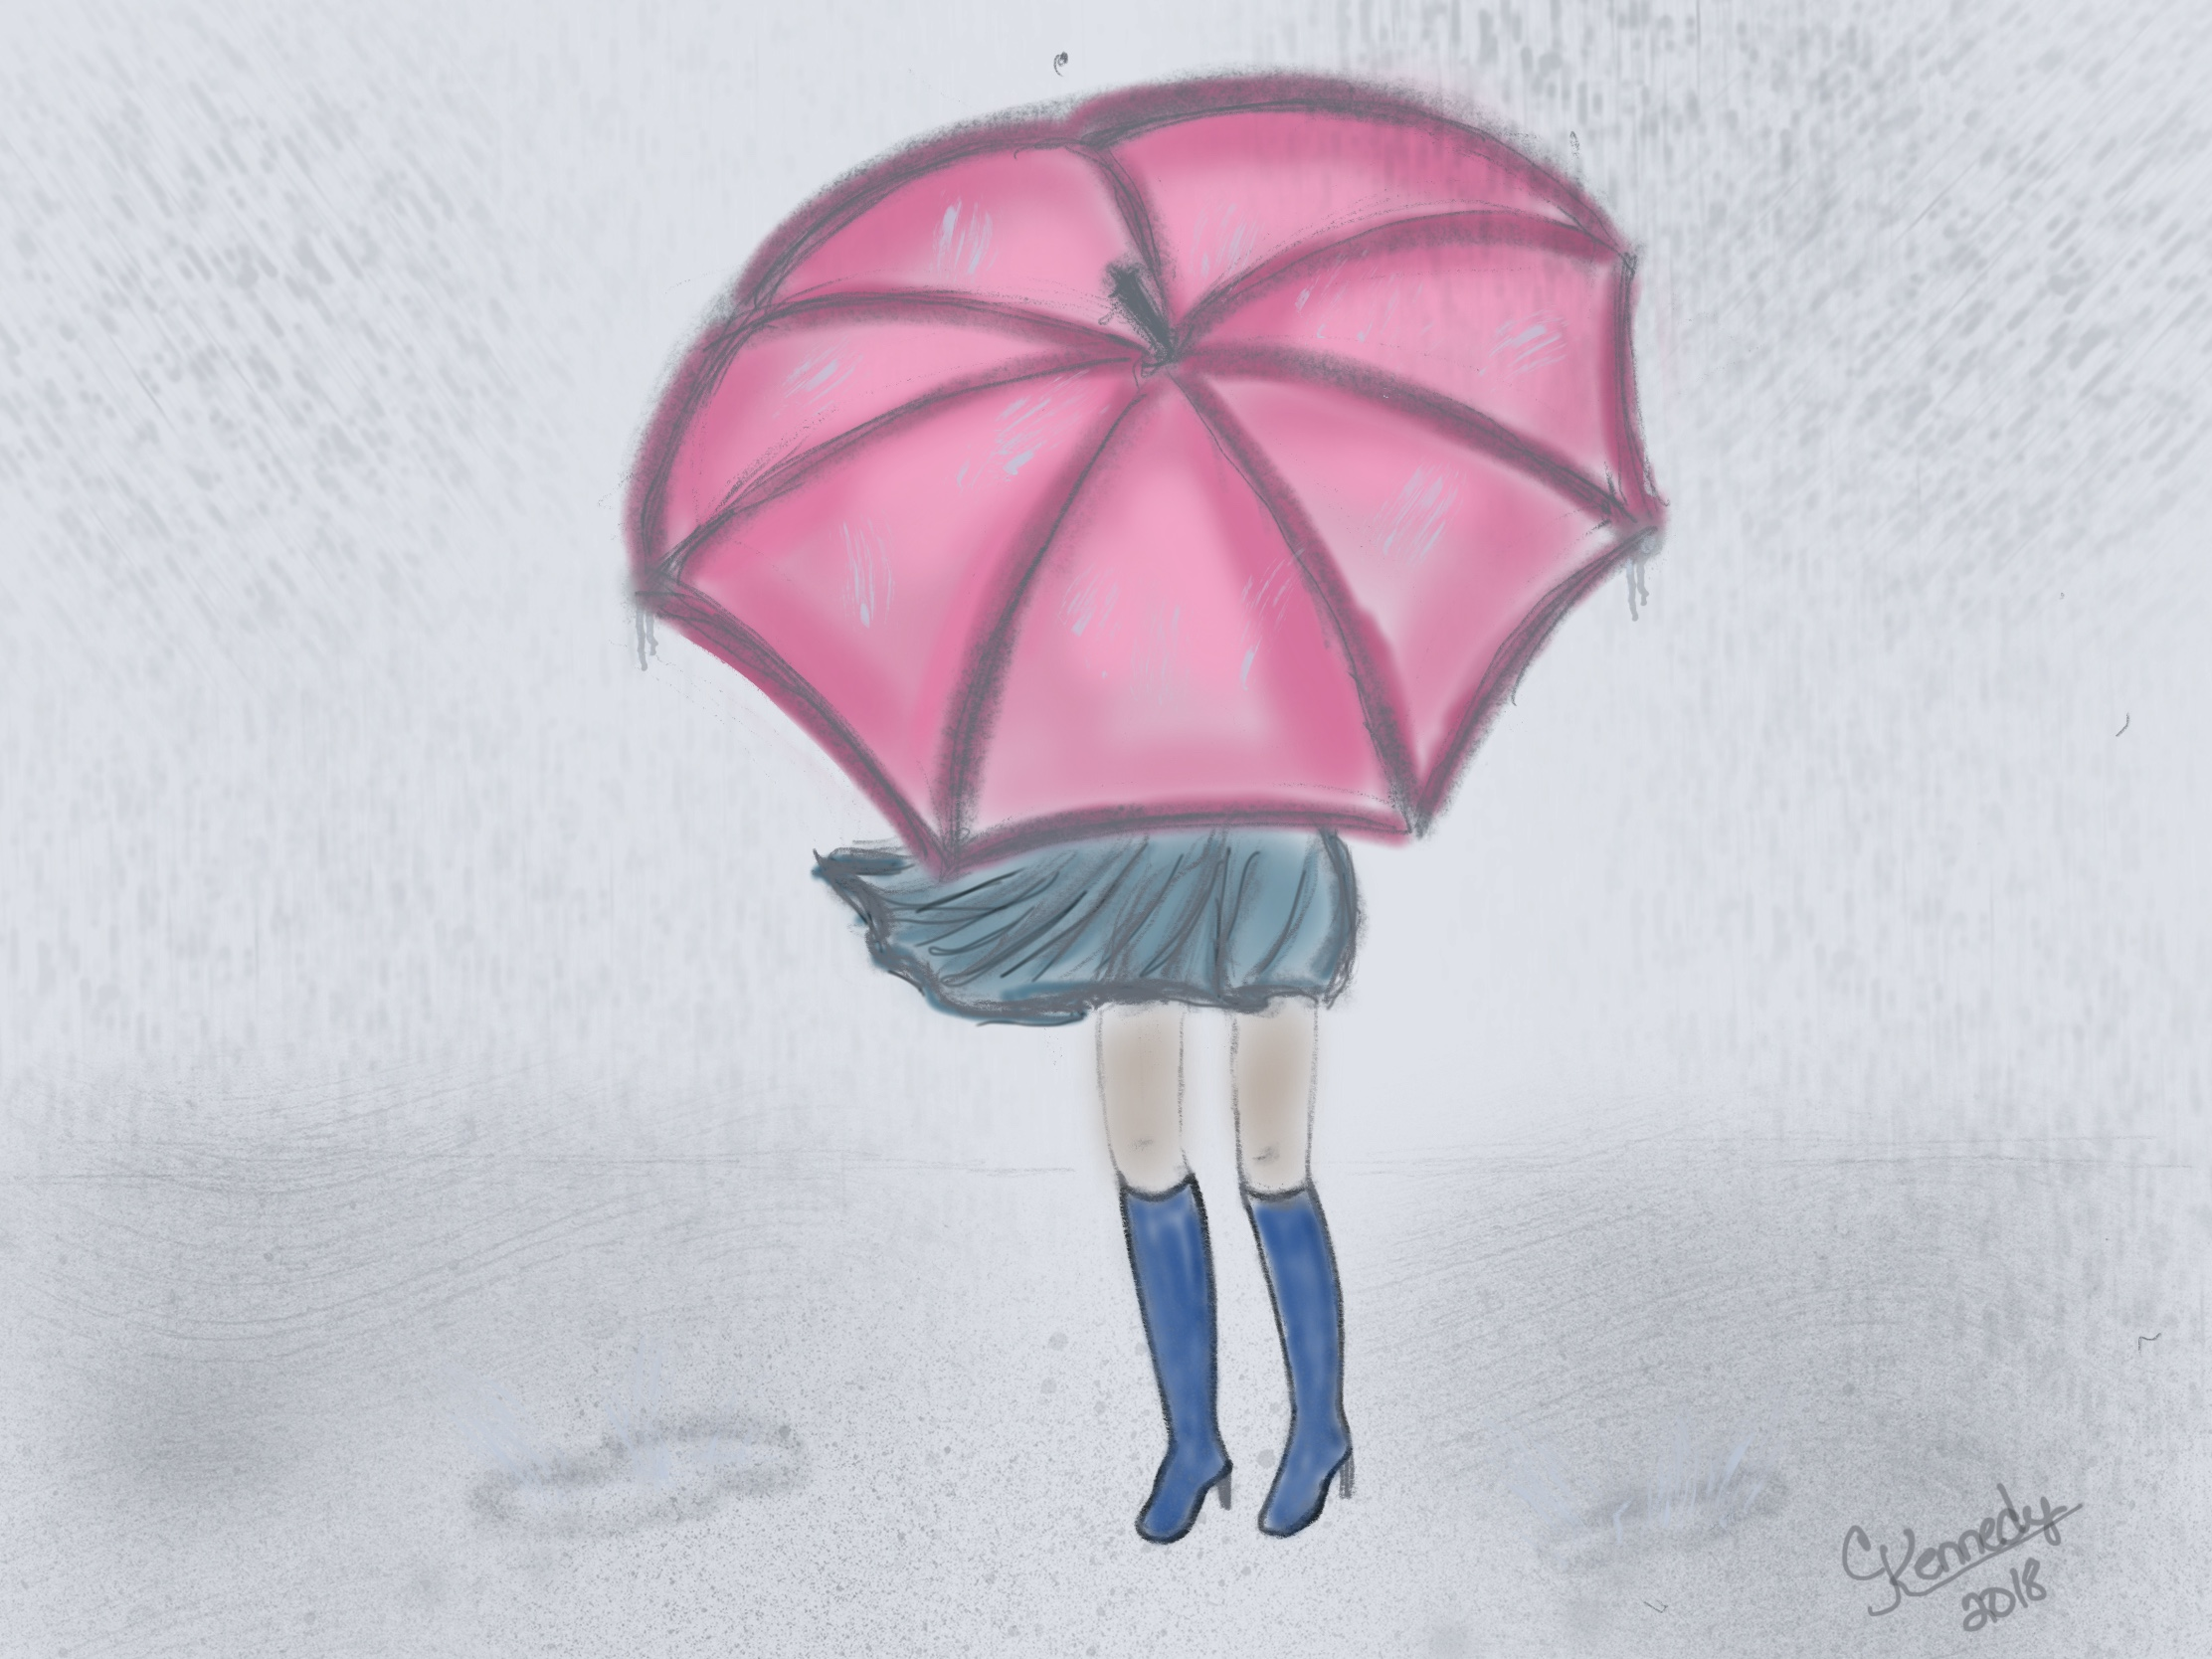 In todays original i stopped with a simple illustration of a girl fighting her umbrella during a rain storm with my ipad apple pencil and drawing app